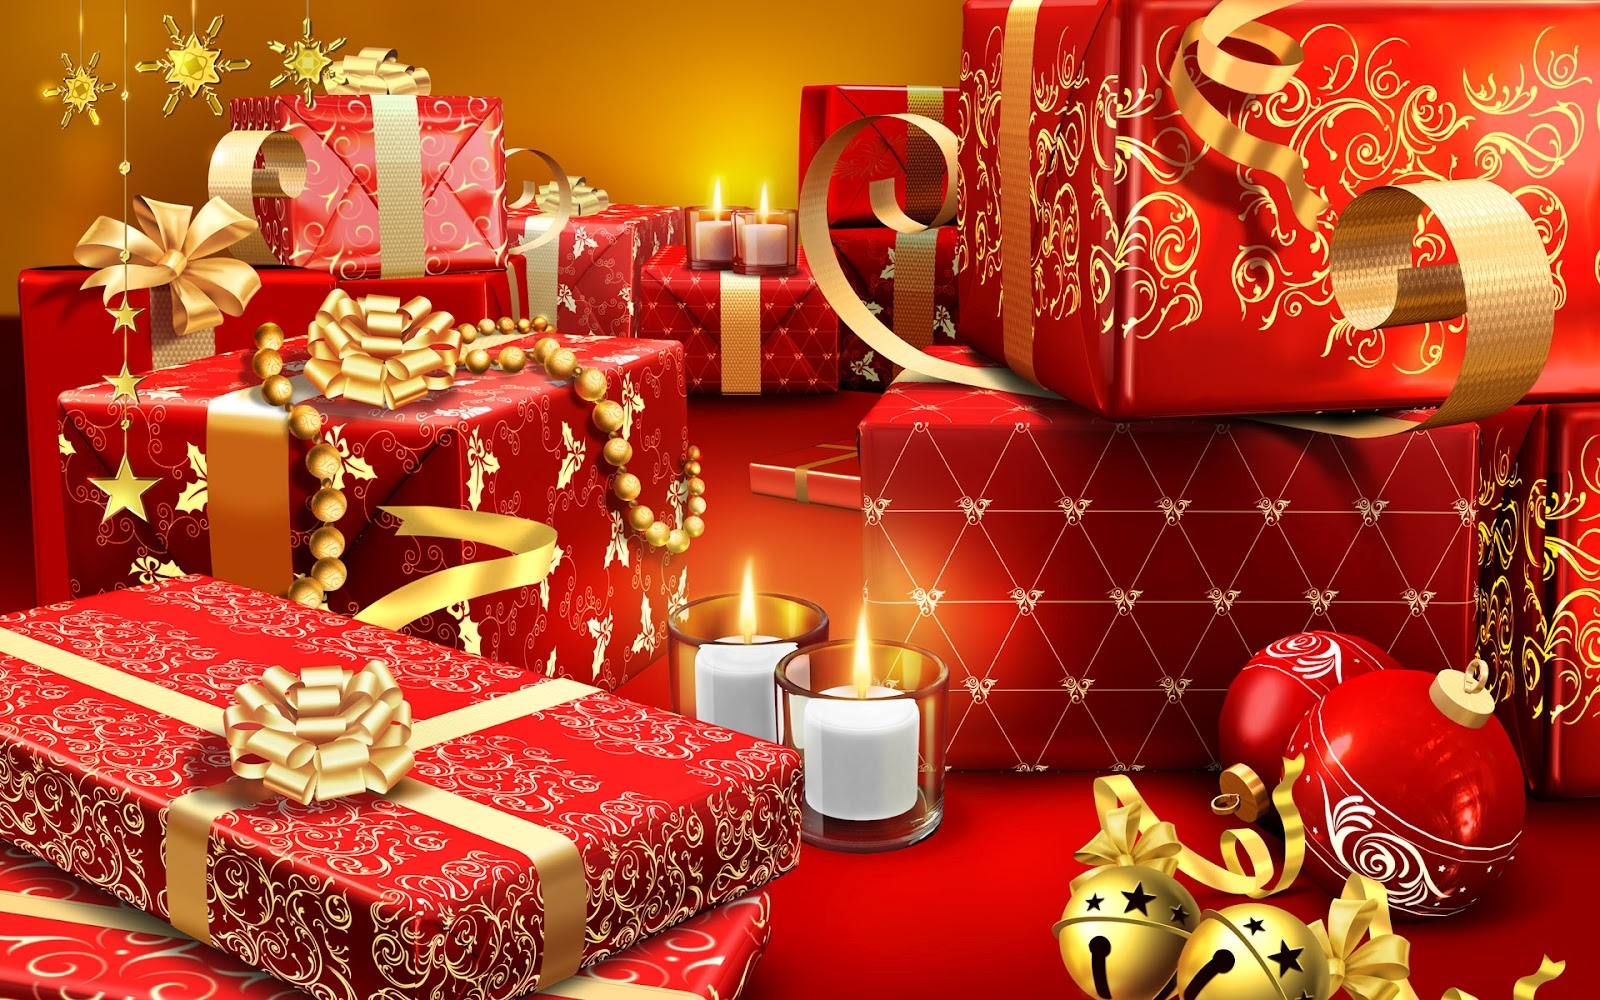 Merry Christmas and Happy New Year 2013 Wallpapers HD Wallpapers 1600x1000